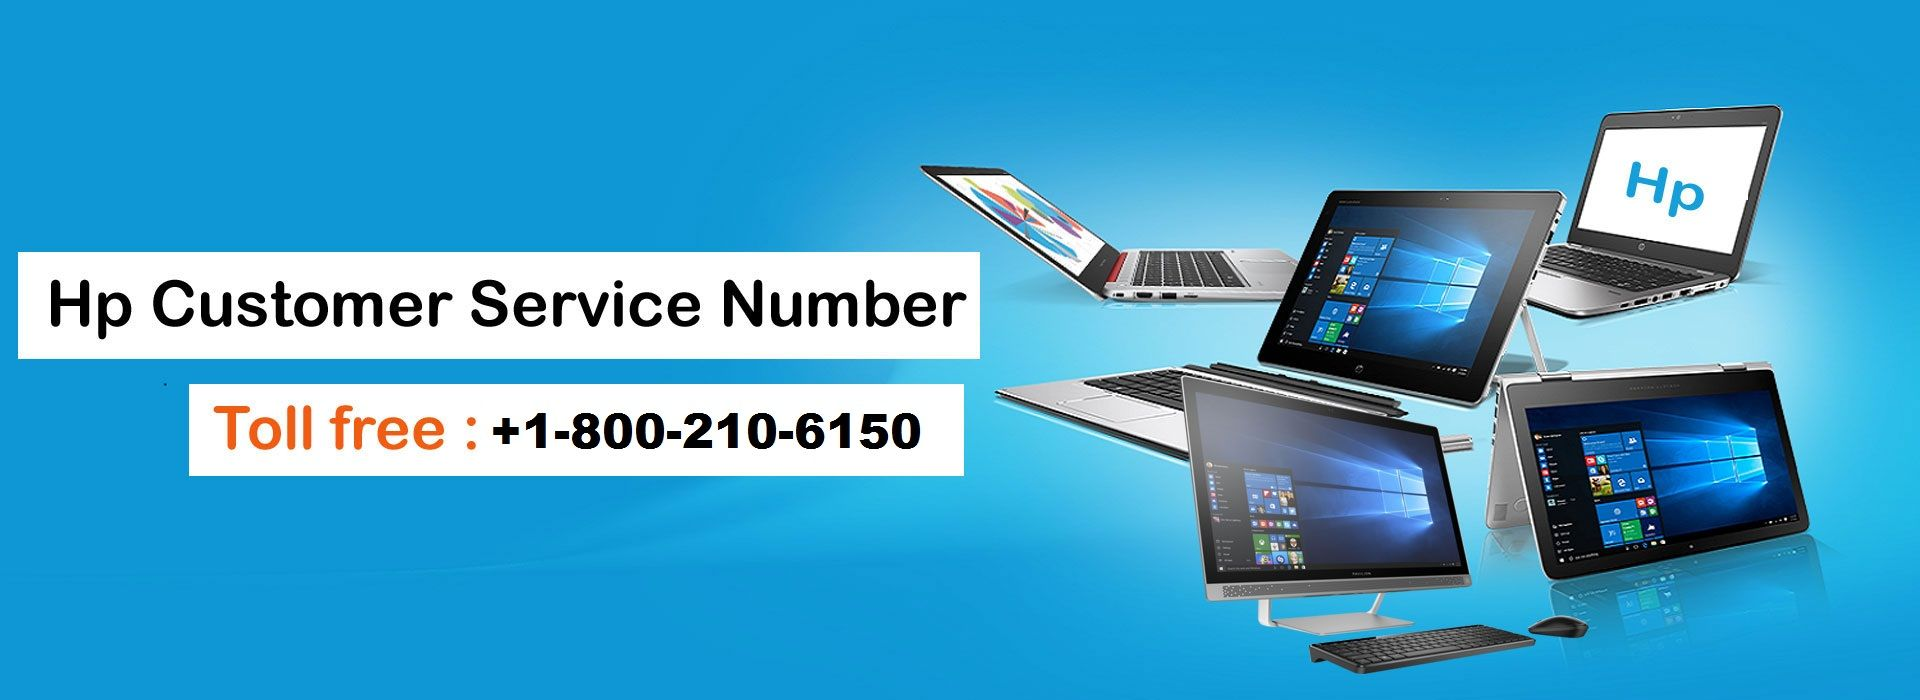 Hp Tech Support 1 800 210 6150 Phone Number Is Here To Connect With Experts 24 7 Hp Computers Computer Help Computer Support